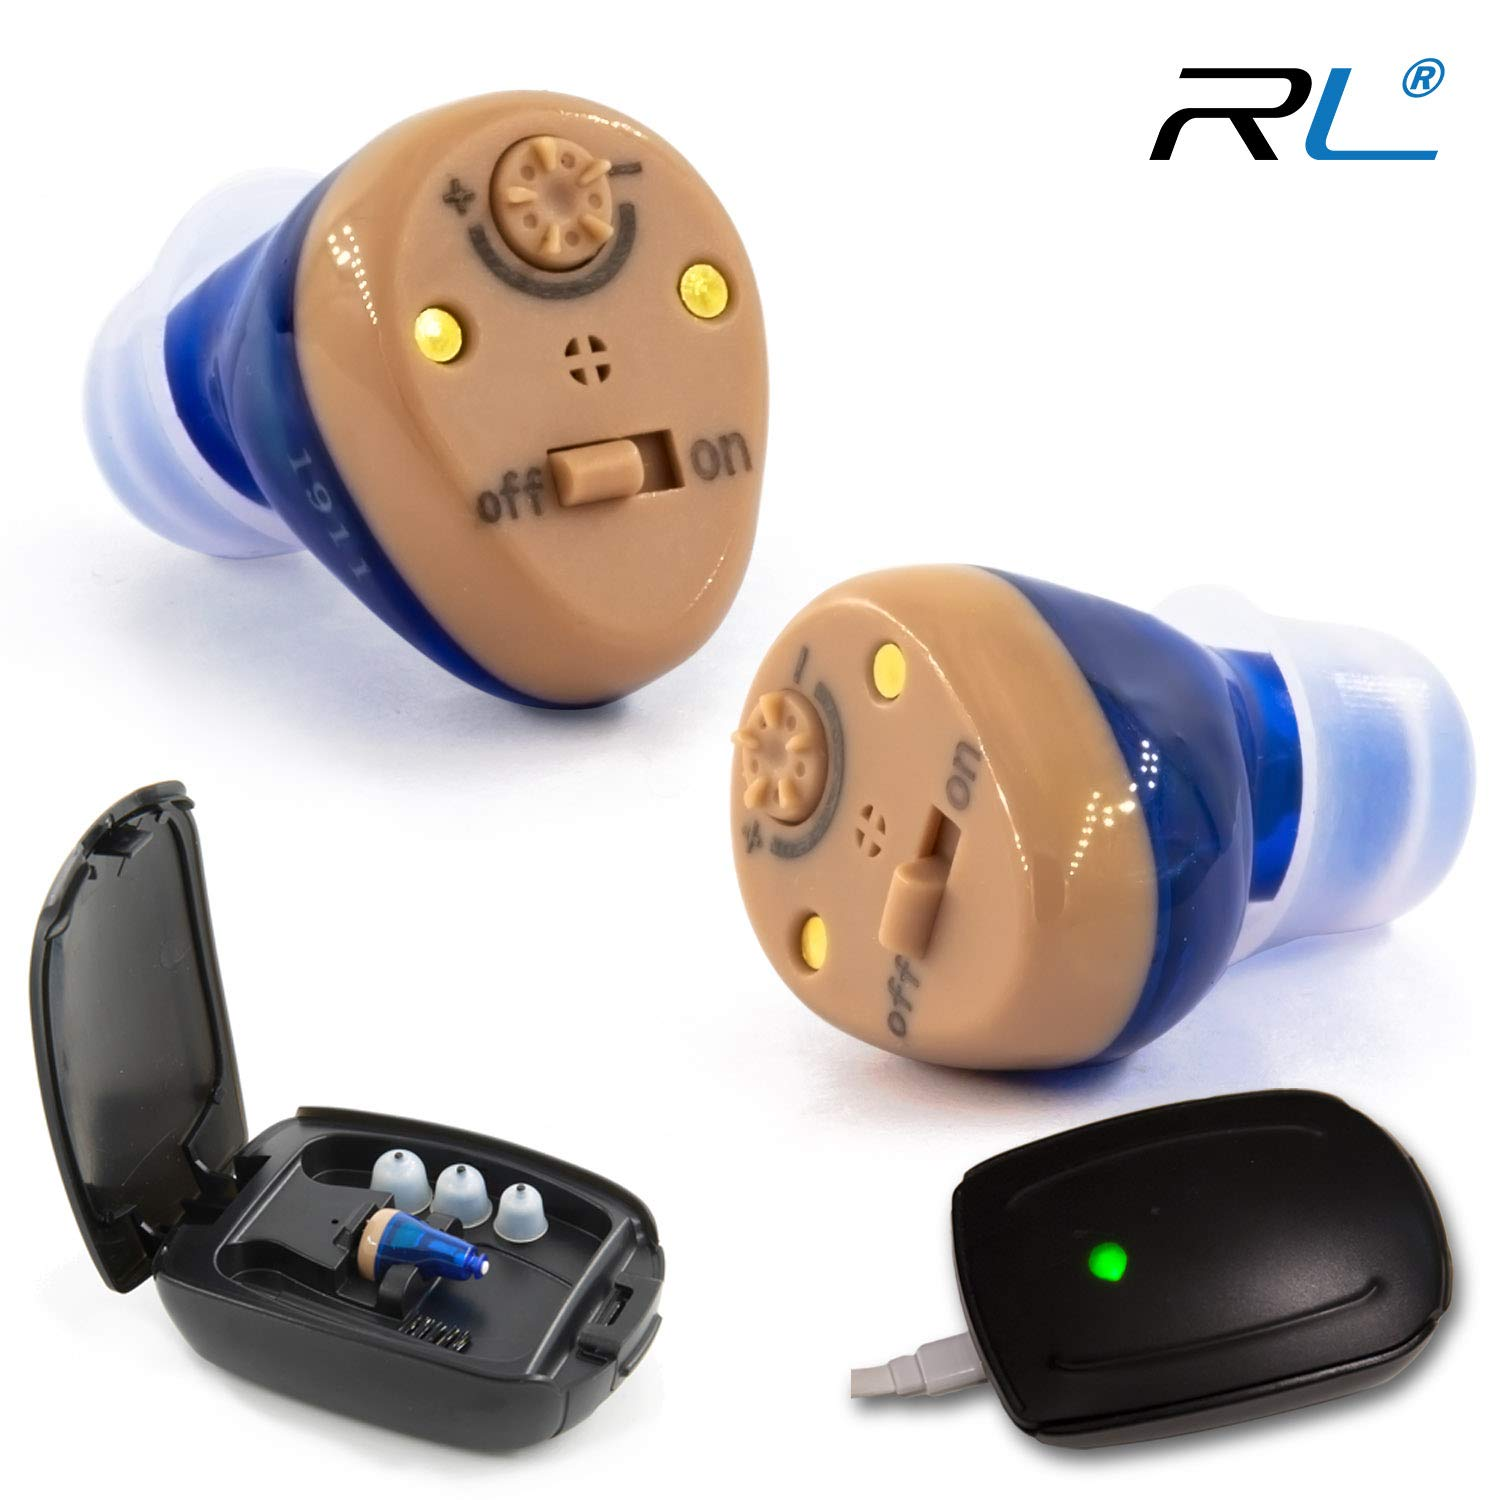 R&L Rechargeable Hearing Amplifier C100 to Aid and Assist Hearing for Adults and Seniors, Digital CIC ITE ITC Style Rechargable Device, Fit Both Ears (2 Pack) by R&L